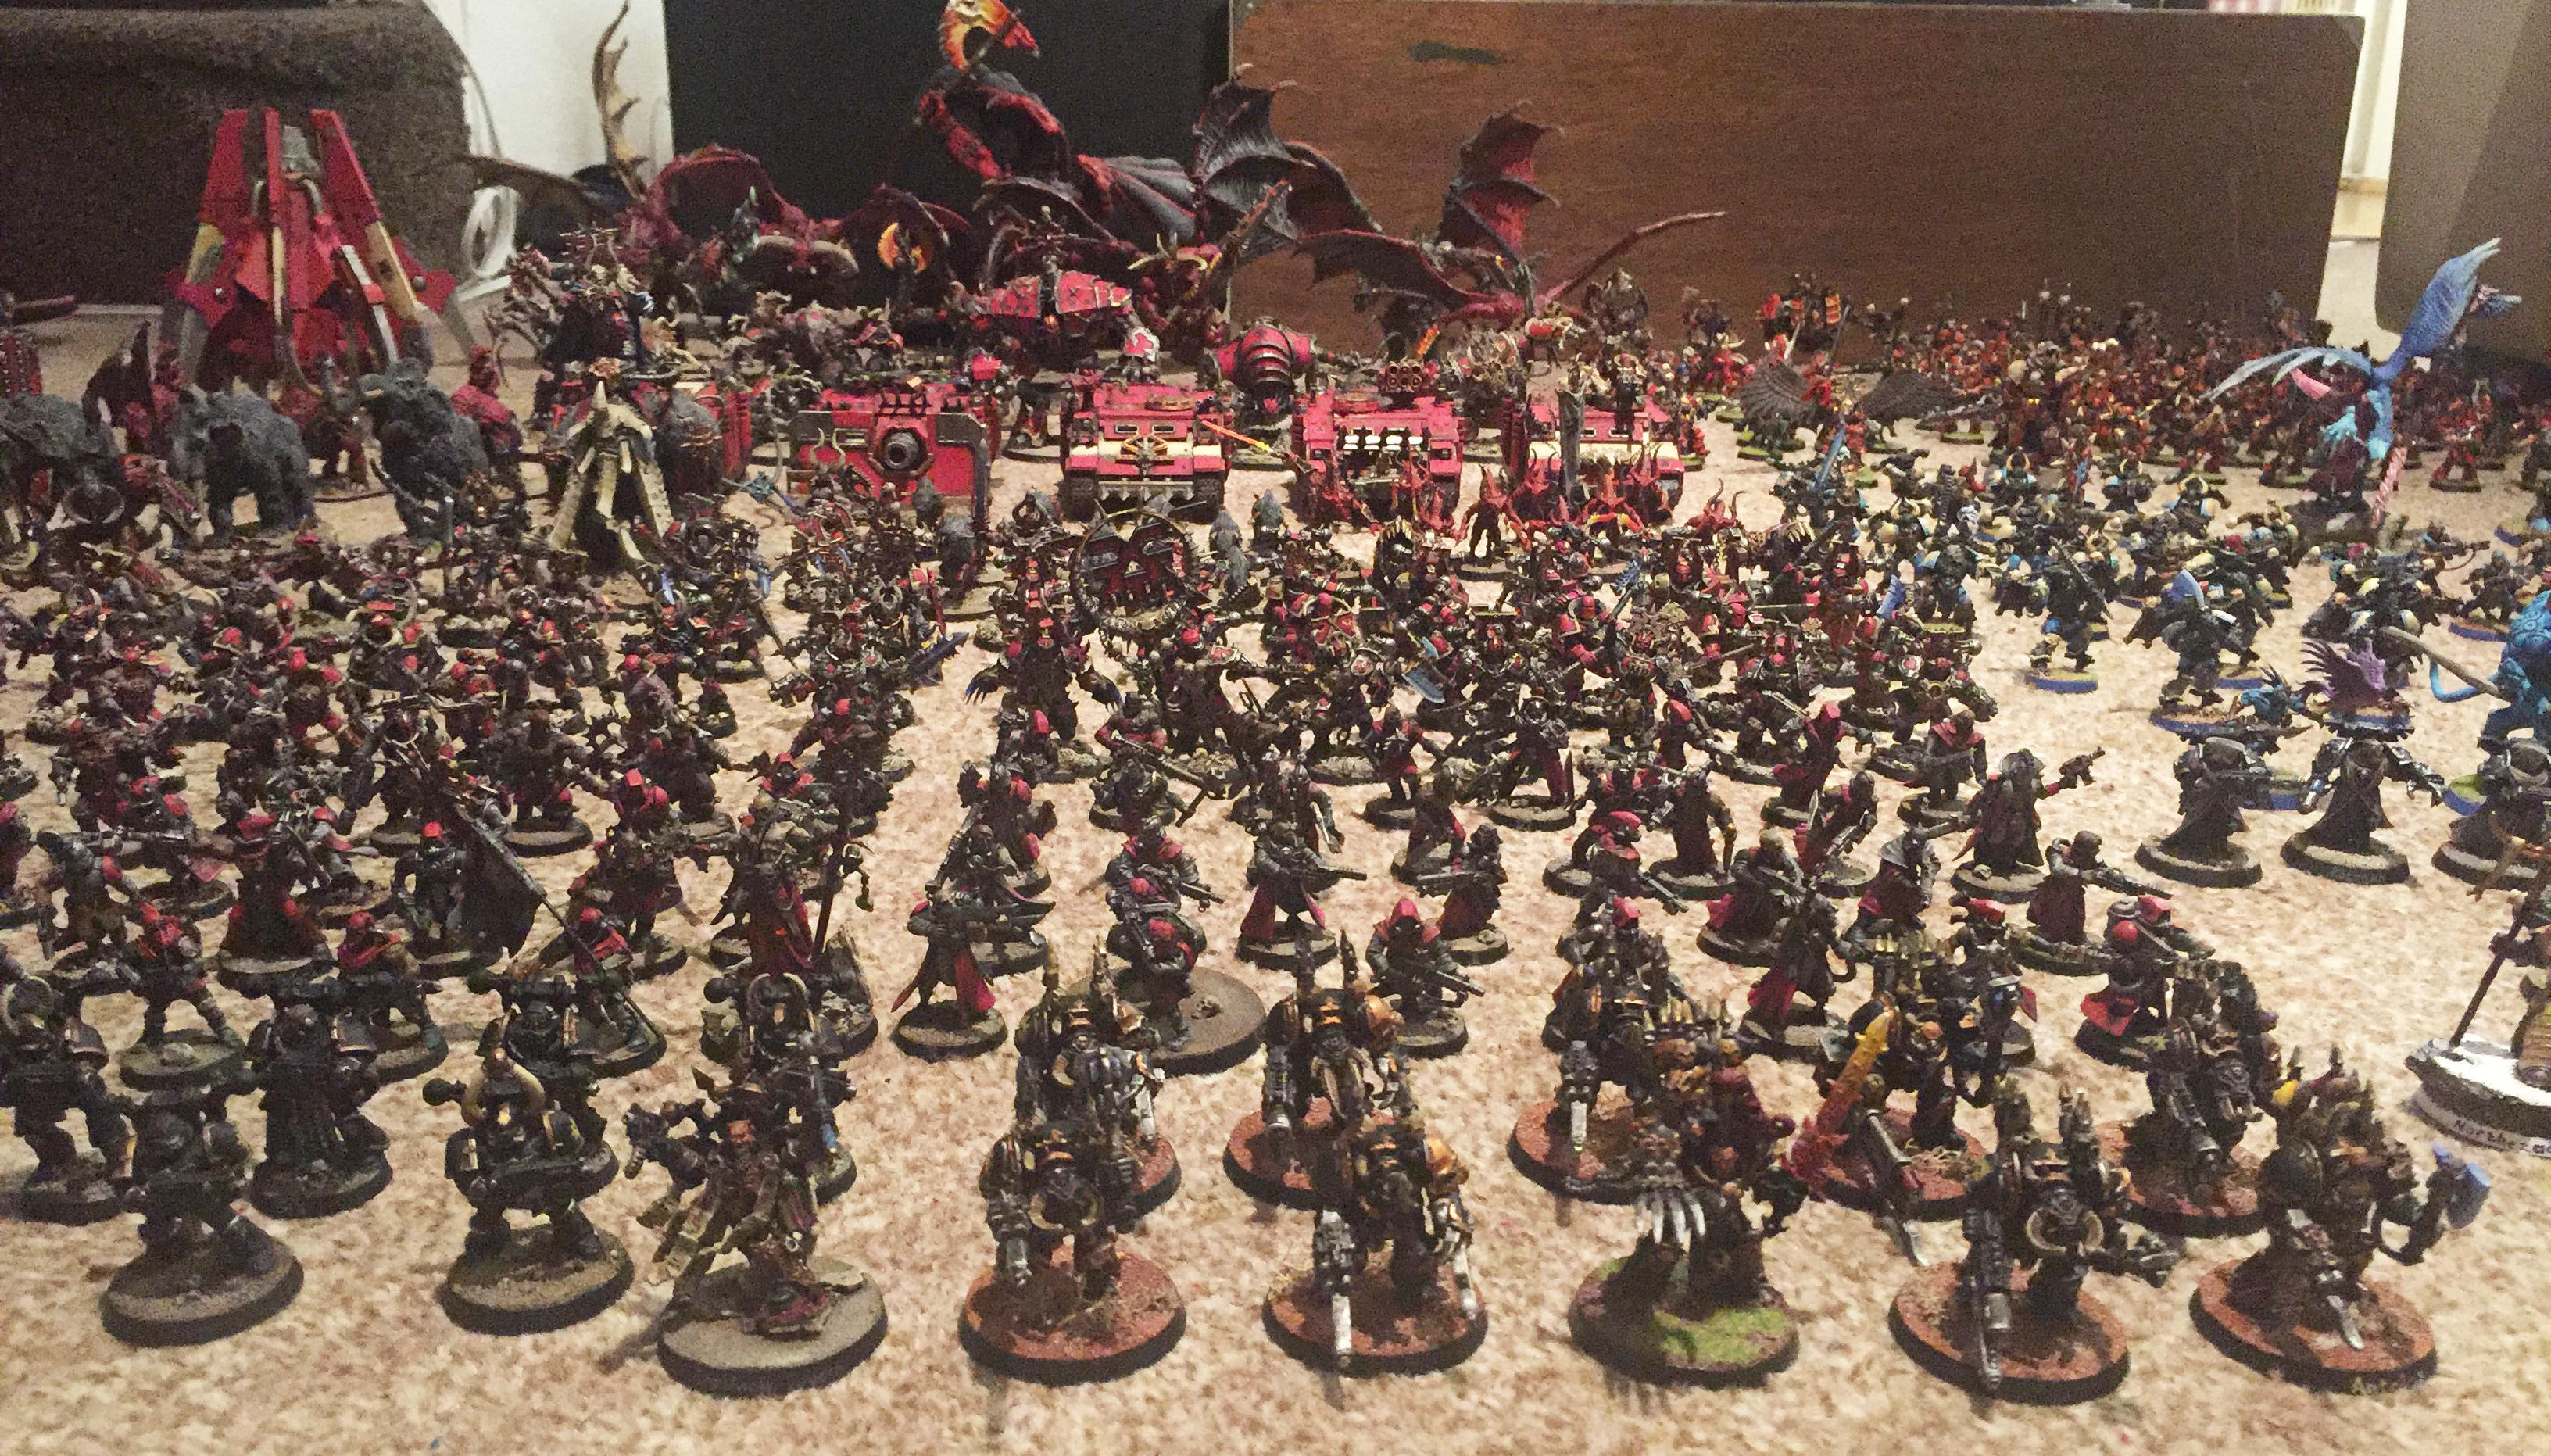 Abaddon The Despoiler, Apocalypse, Army, Chaos Daemons, Chaos Space Marines, Chaos Undivided, Khorne, Renegades, Tzeentch, Warhammer 40,000